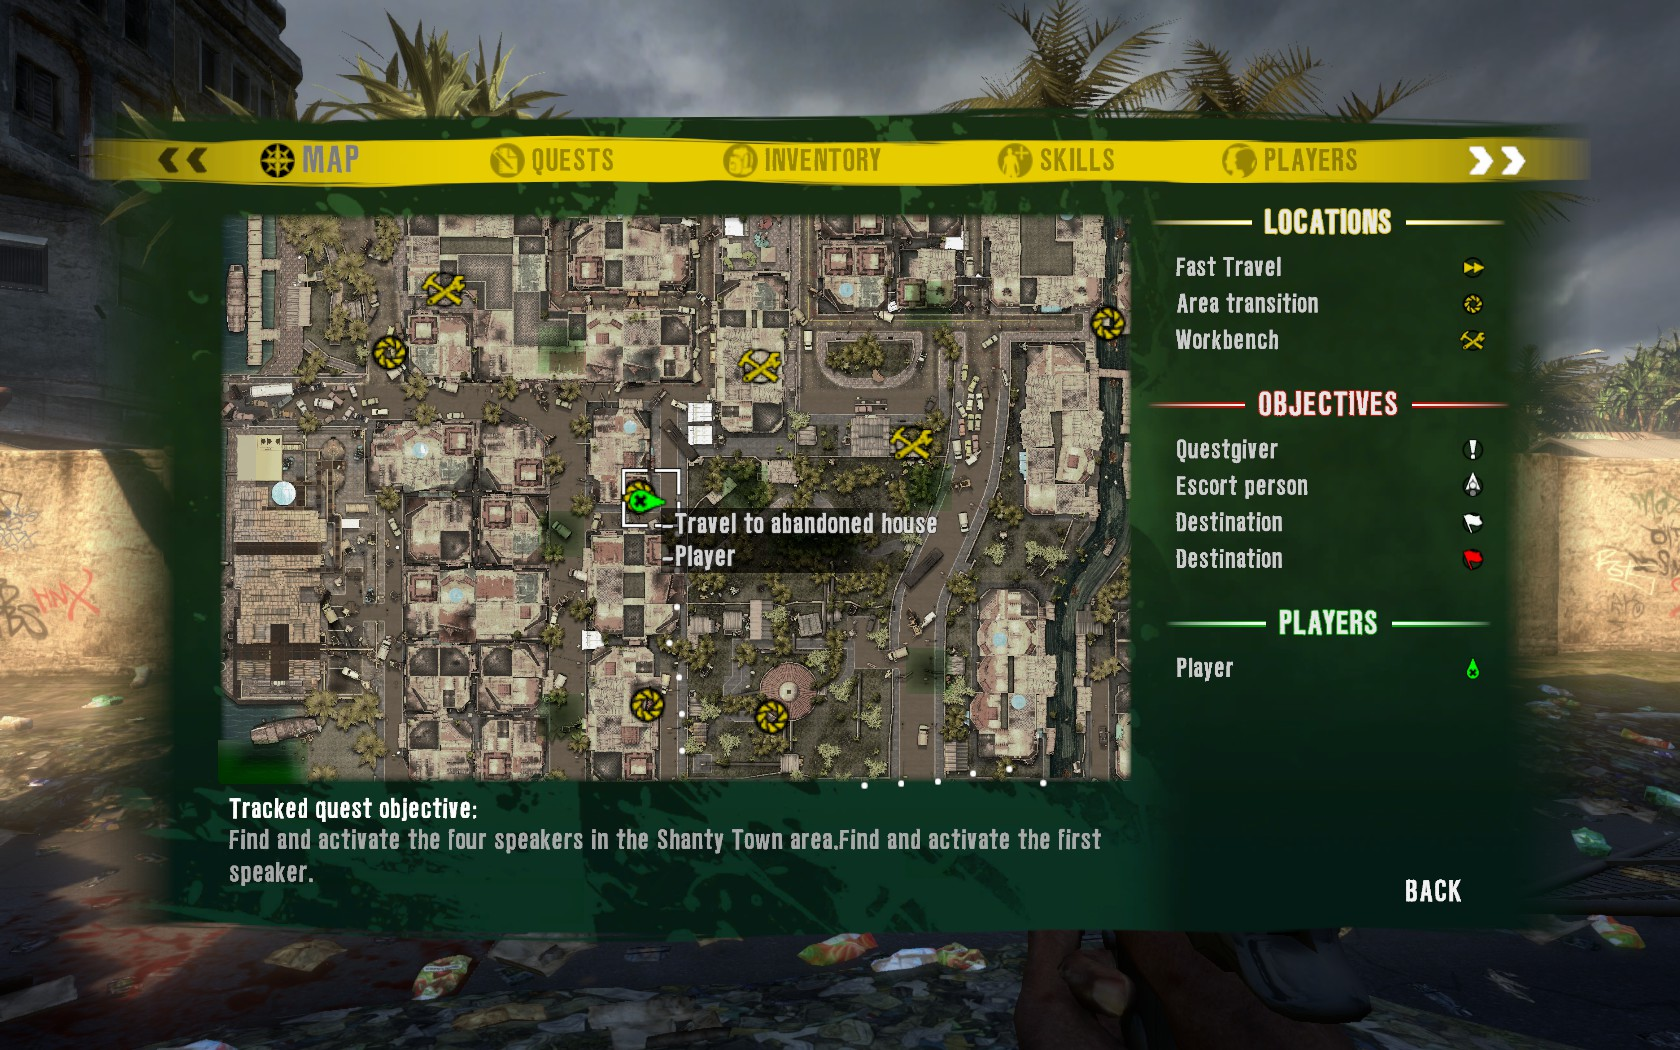 Steam Community :: Guide :: Findable Blueprints Locations Guide on dayz map, until dawn map, the crew map, dead rising 2 secret locations, the evil within map, left 4 dead map, dead city map, arkham city map, dying light map, dead island2, skyrim map, dead space map, dead water, gta 4 map, minecraft map, dead rising map, red dead redemption map, gta 5 map, endwar map,